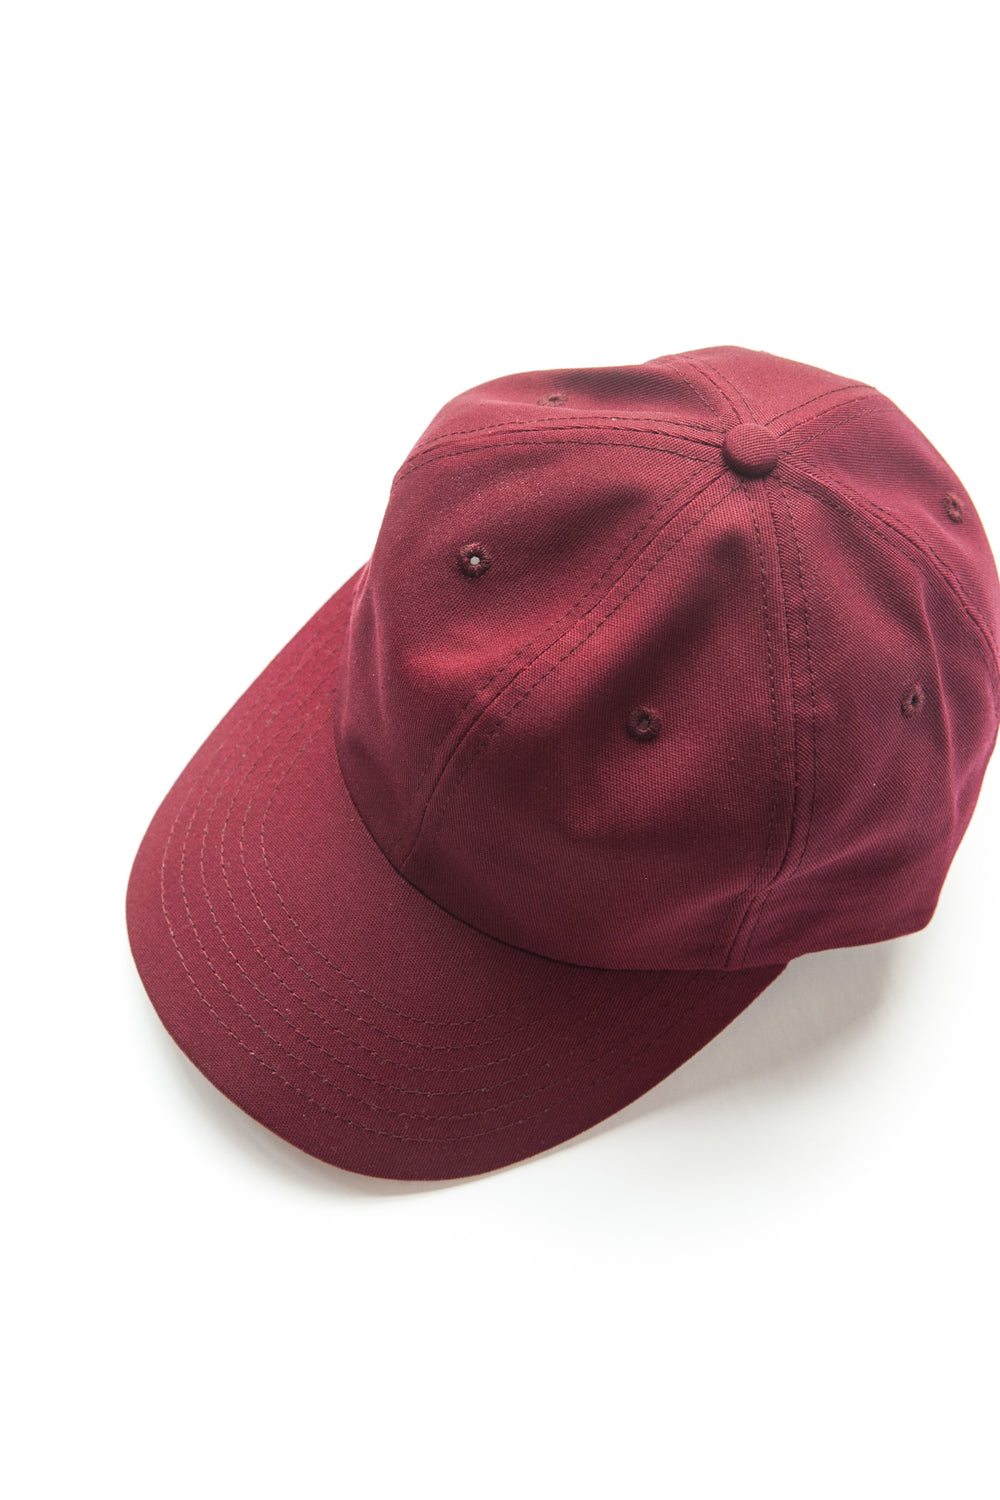 SIX PANEL CAP BURGUNDY COTTON TWILL